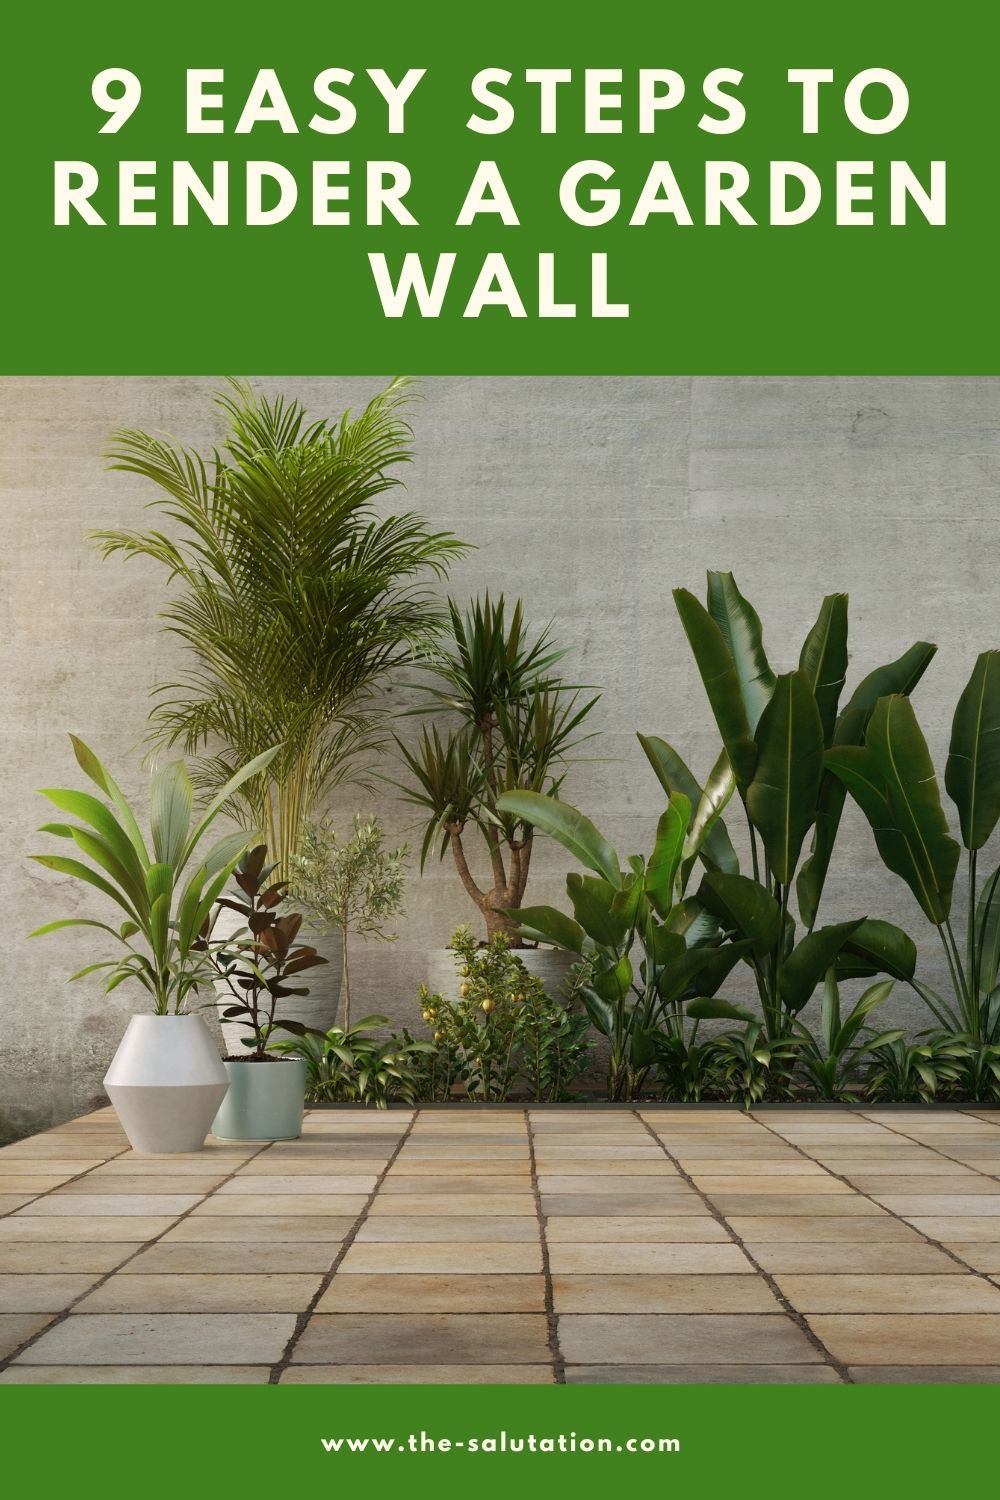 9 Easy Steps to Render a Garden Wall 2